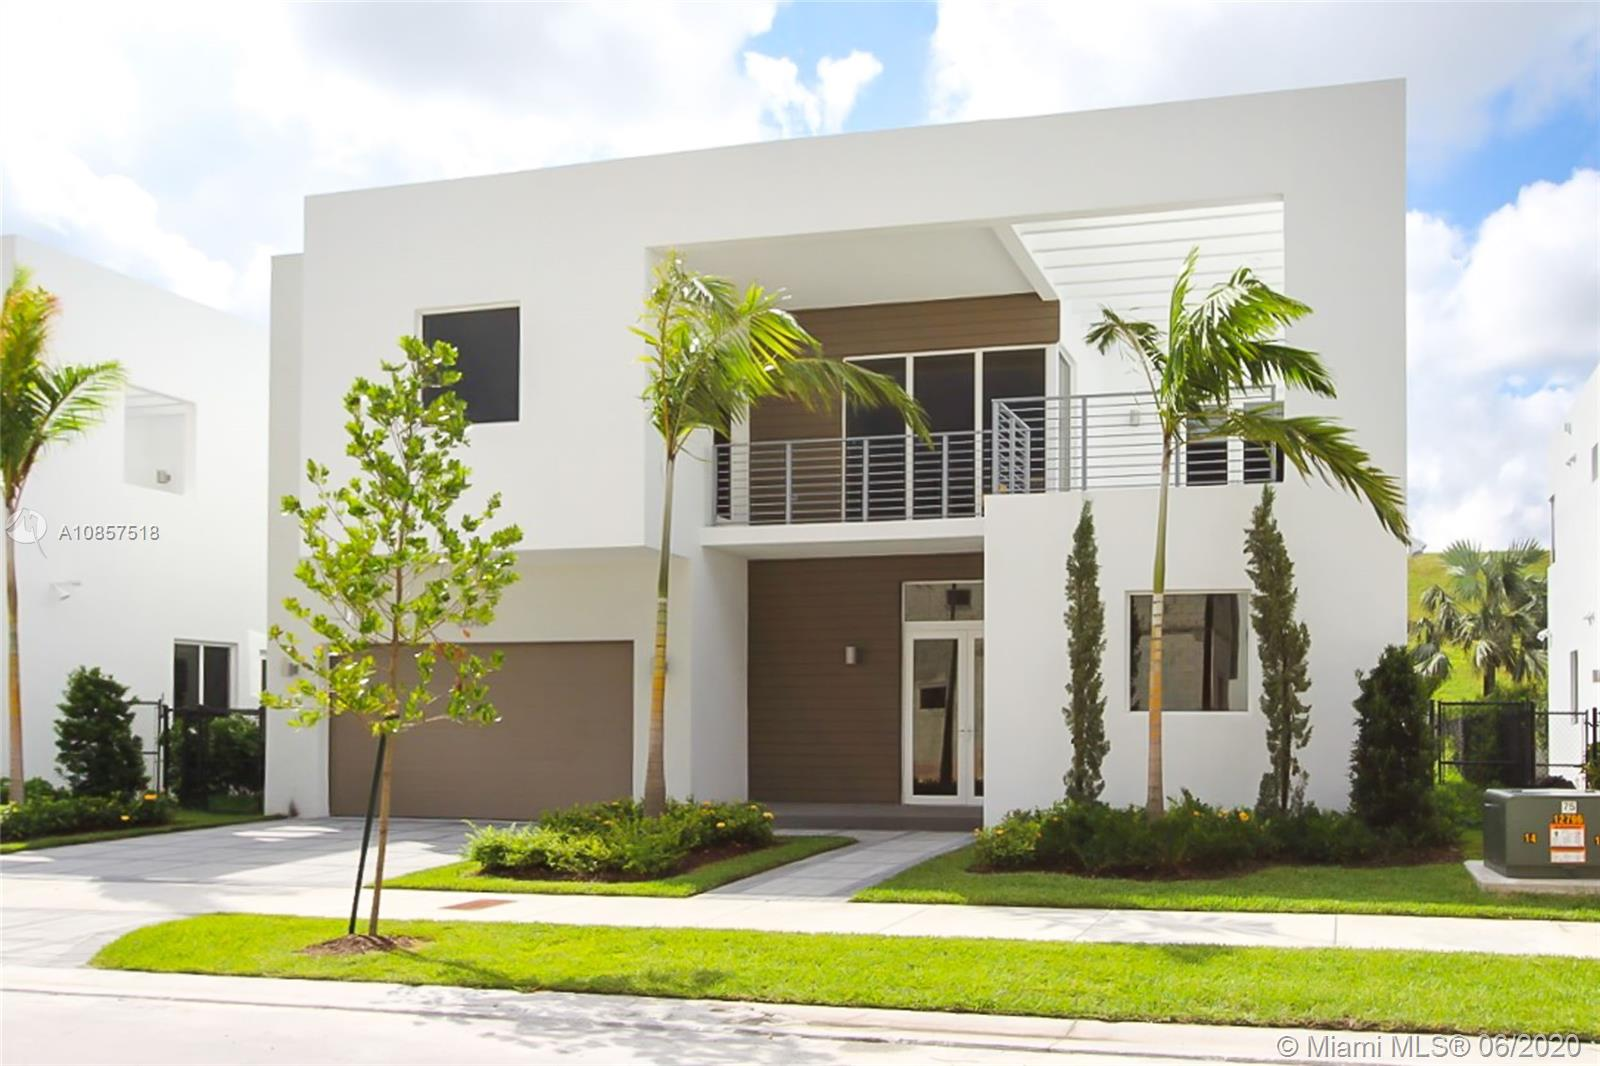 Exclusive new home at Modern 60, the finest secure and gated community in the City of Doral. New 5 bed/5 bath two story house featuring an open floor plan on the first floor with elegant interior architectural details, 12' ceilings, impact windows & doors throughout, porcelain floors, kitchen with Italian cabinetry, quartz counter tops, top of the line SS appliances, smart home technology. Master bedroom features his and hers walking closet and a private balcony. Beautiful landscaping, private pool area with a summer kitchen excellent for entertaining. Enjoy private access to clubhouse w/state of the art amenities.